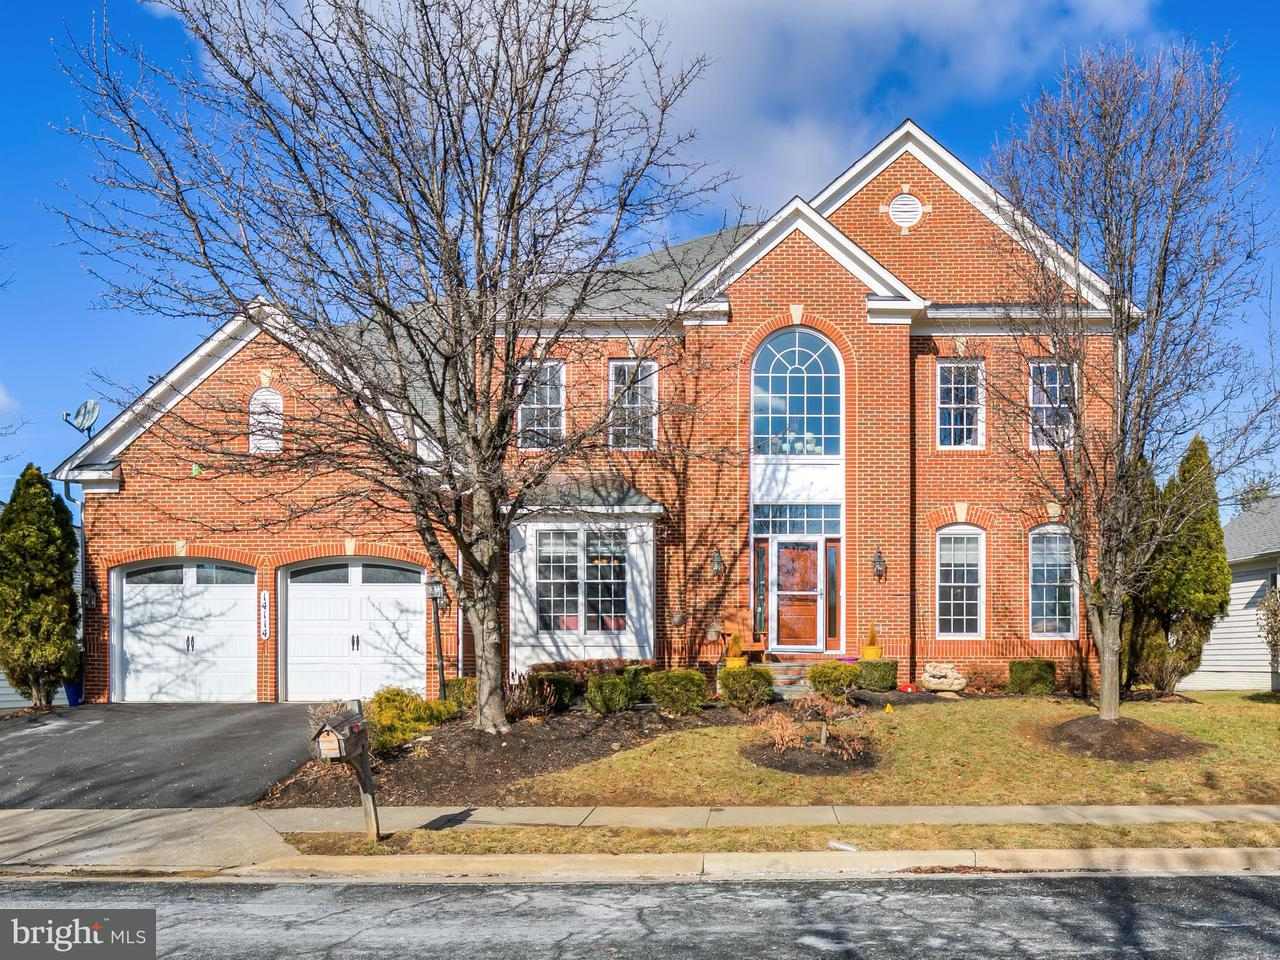 Single Family Home for Sale at 14114 Chinkapin Drive 14114 Chinkapin Drive Rockville, Maryland 20850 United States